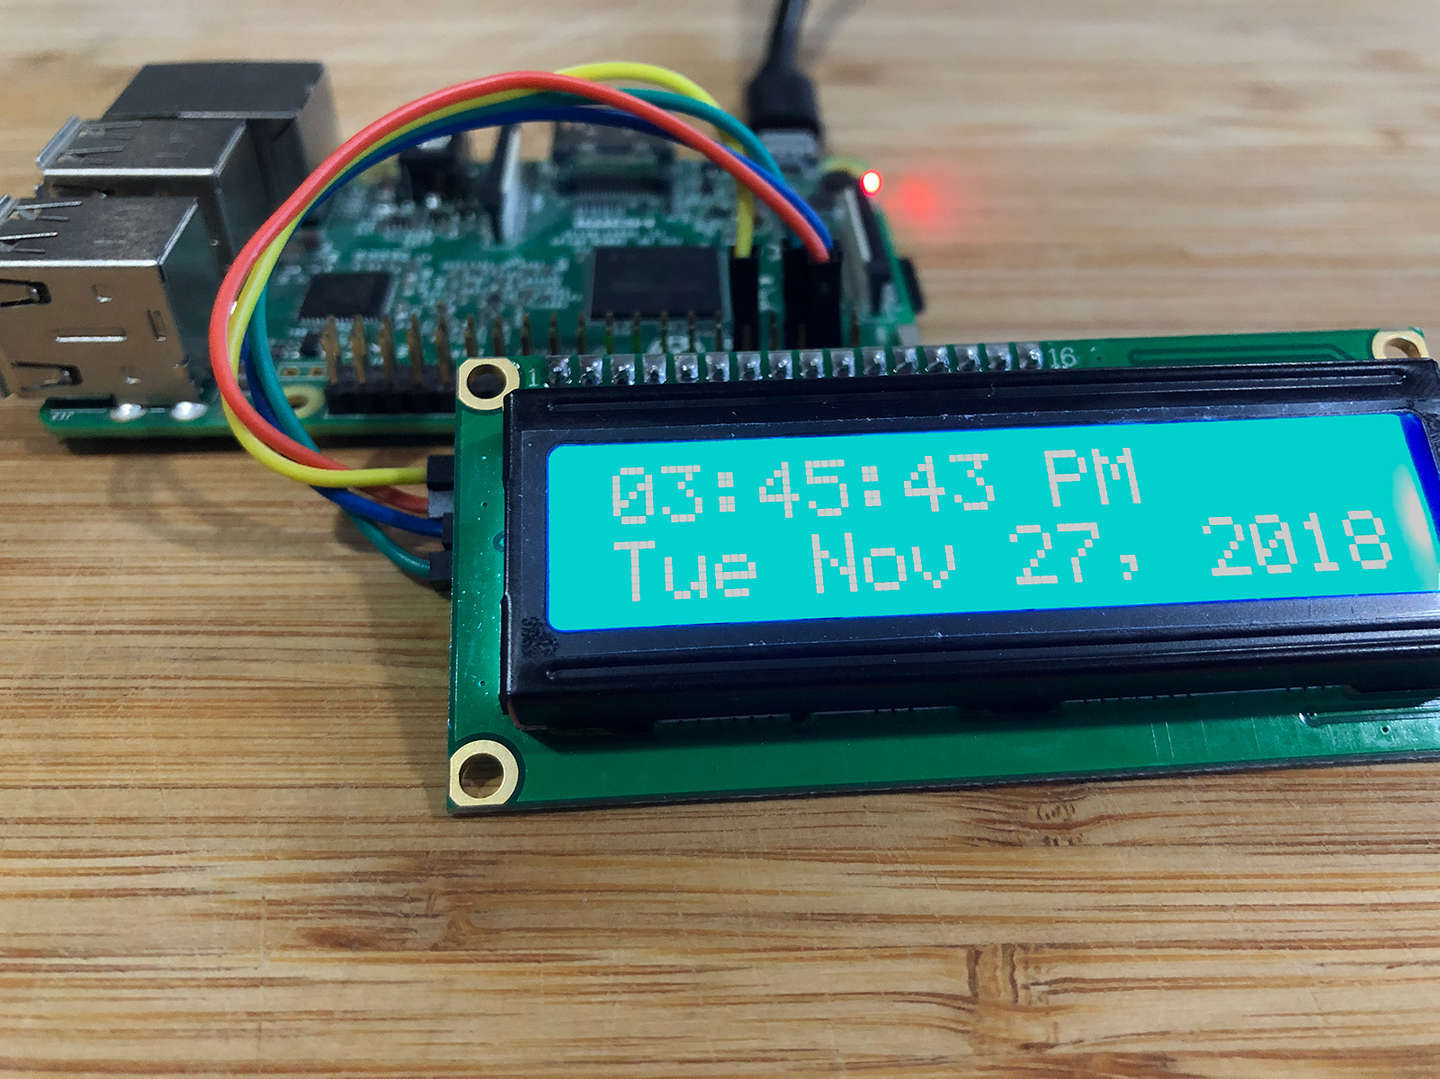 Raspberry Pi alarm clock